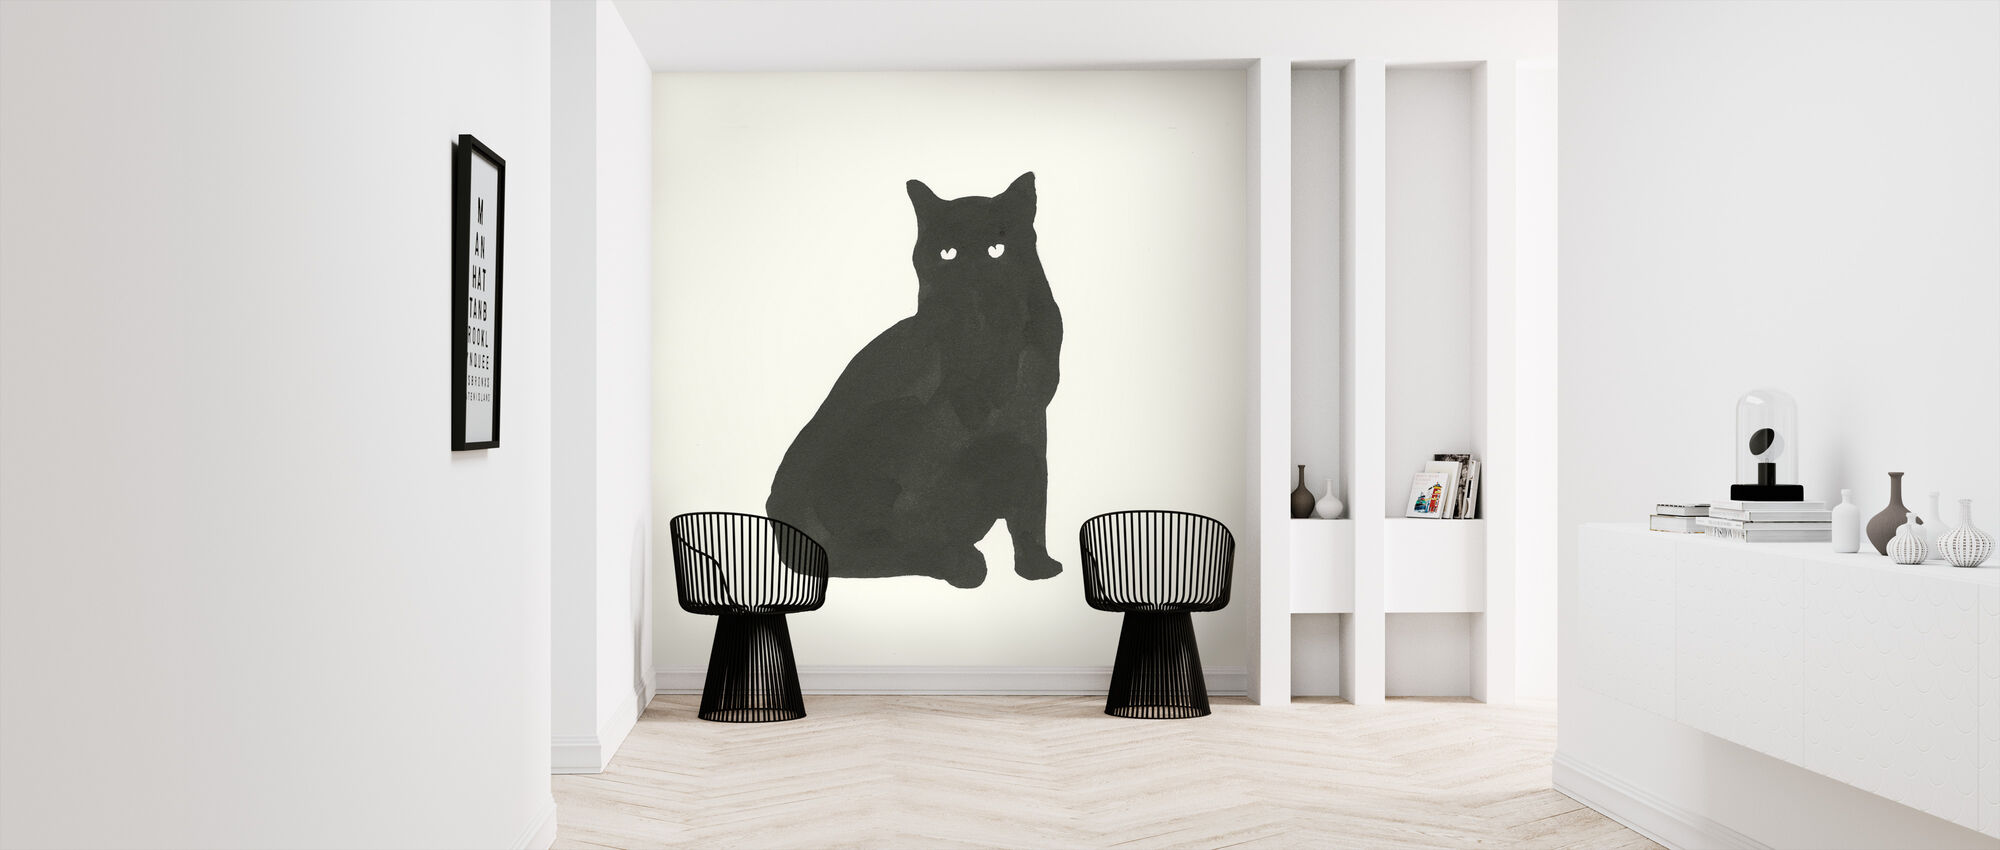 Black Cat - Wallpaper - Hallway